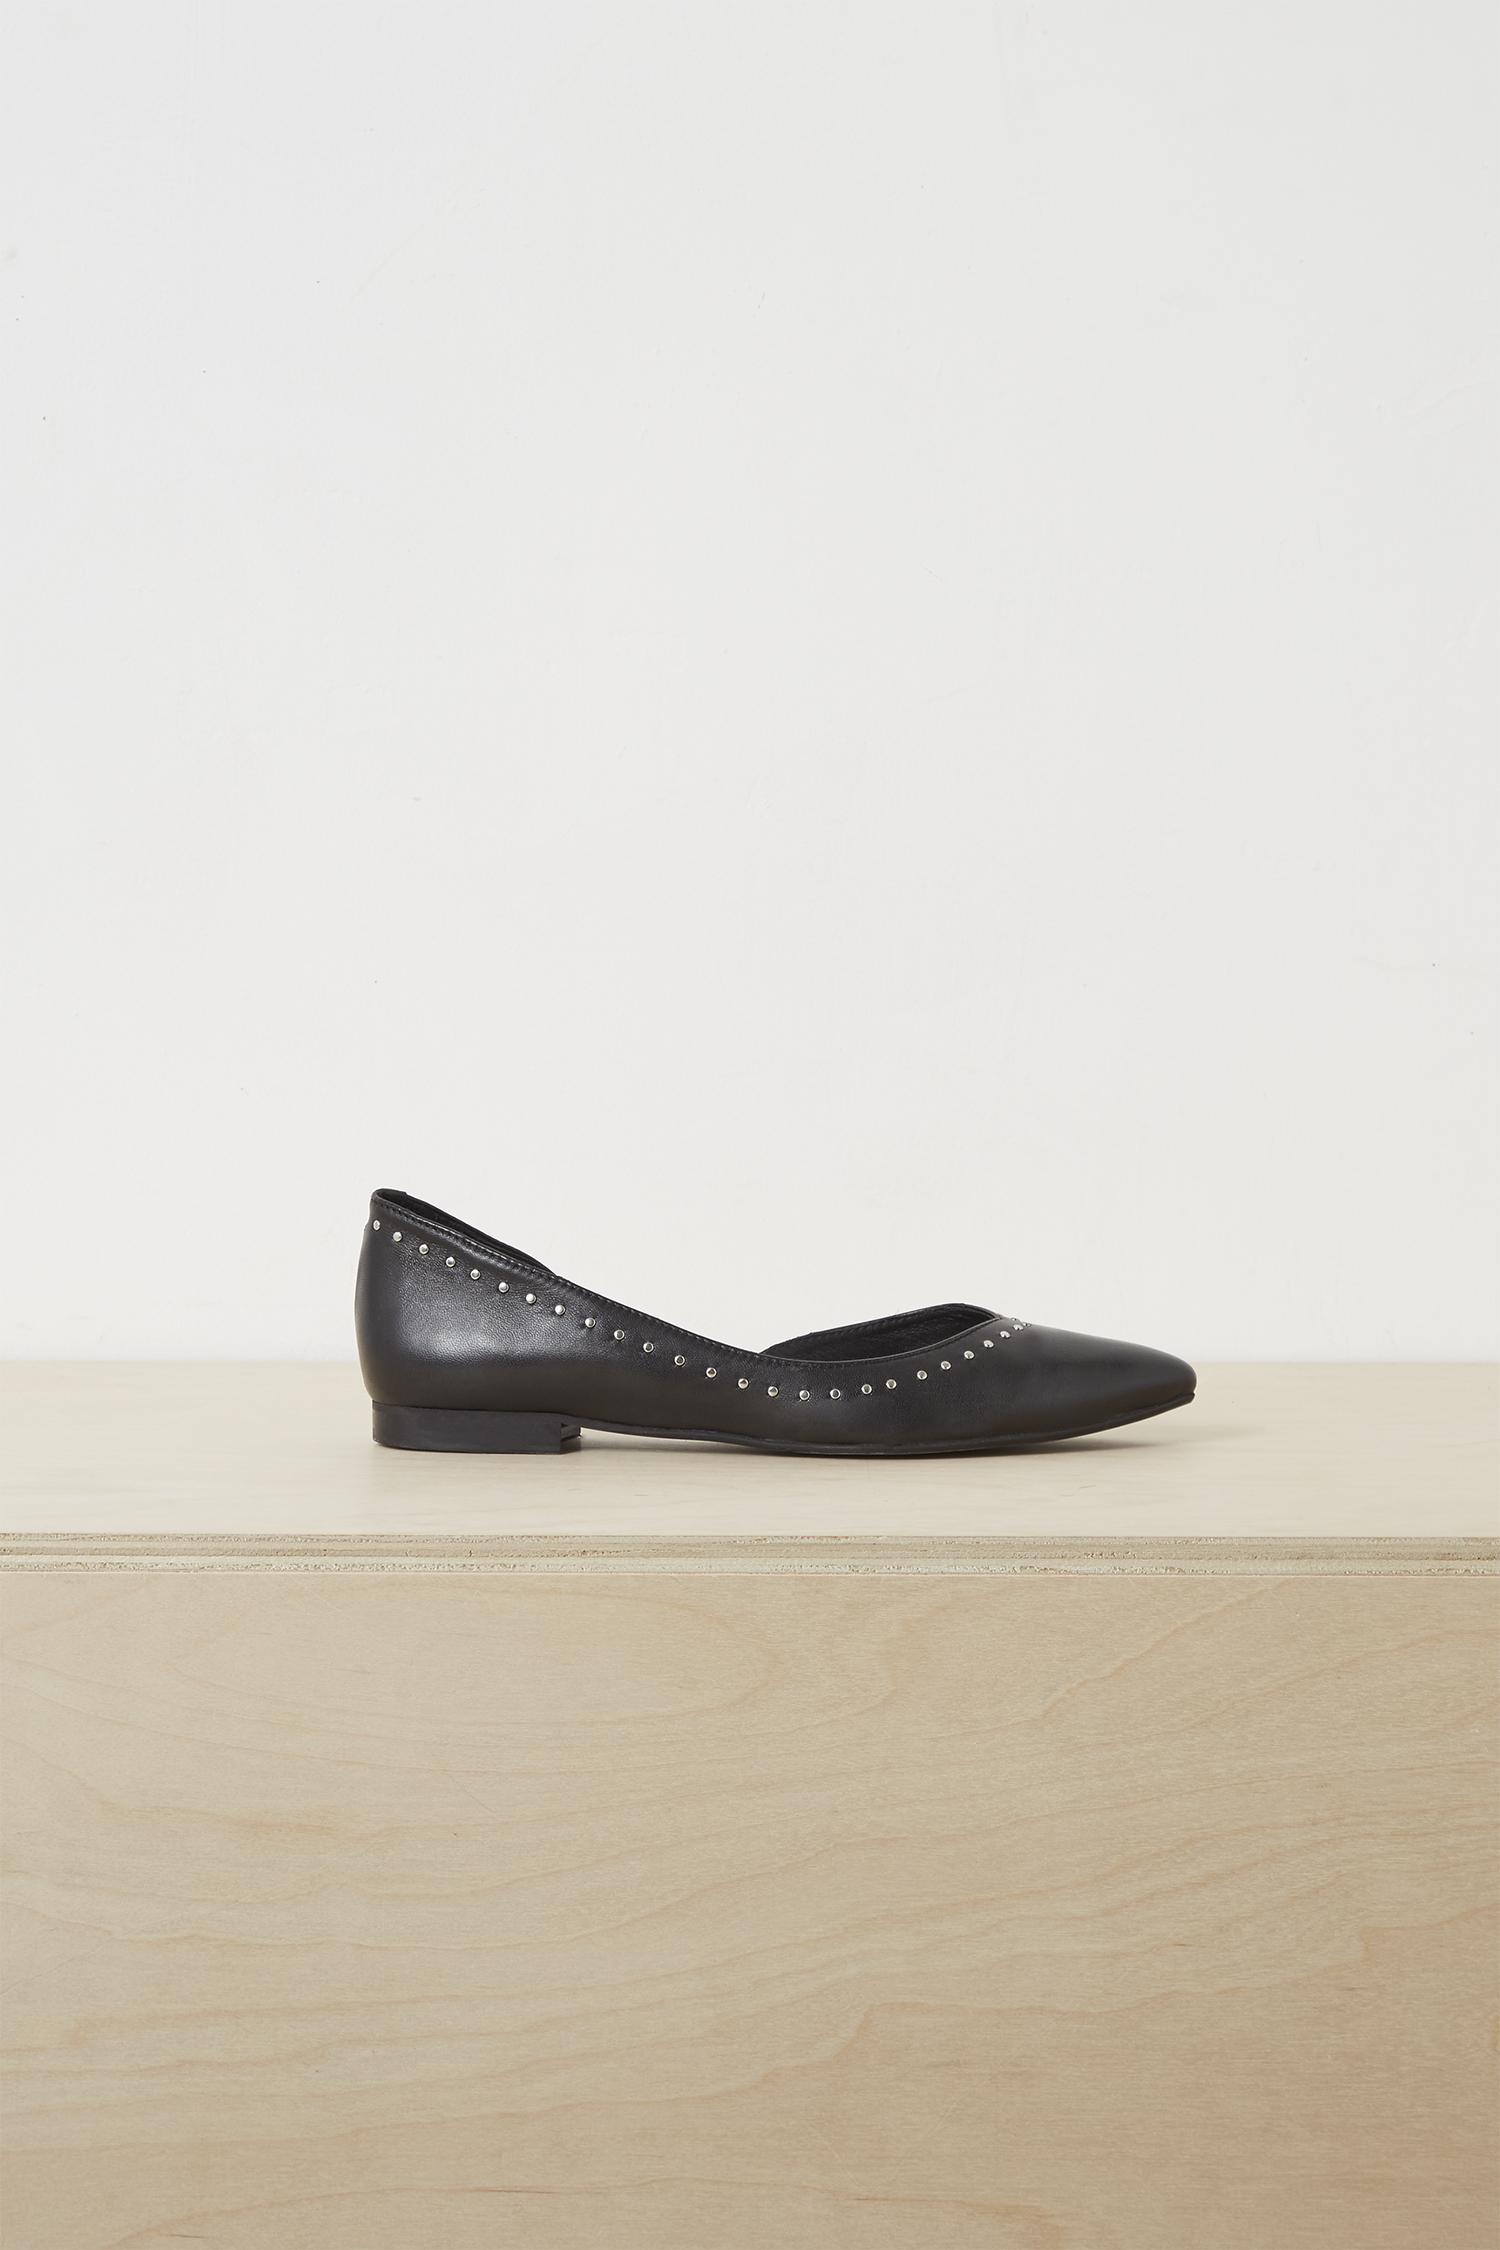 720fc2b7a81 French Connection - Black Verenna Stud Cut Out Ballet Flats - Lyst. View  fullscreen